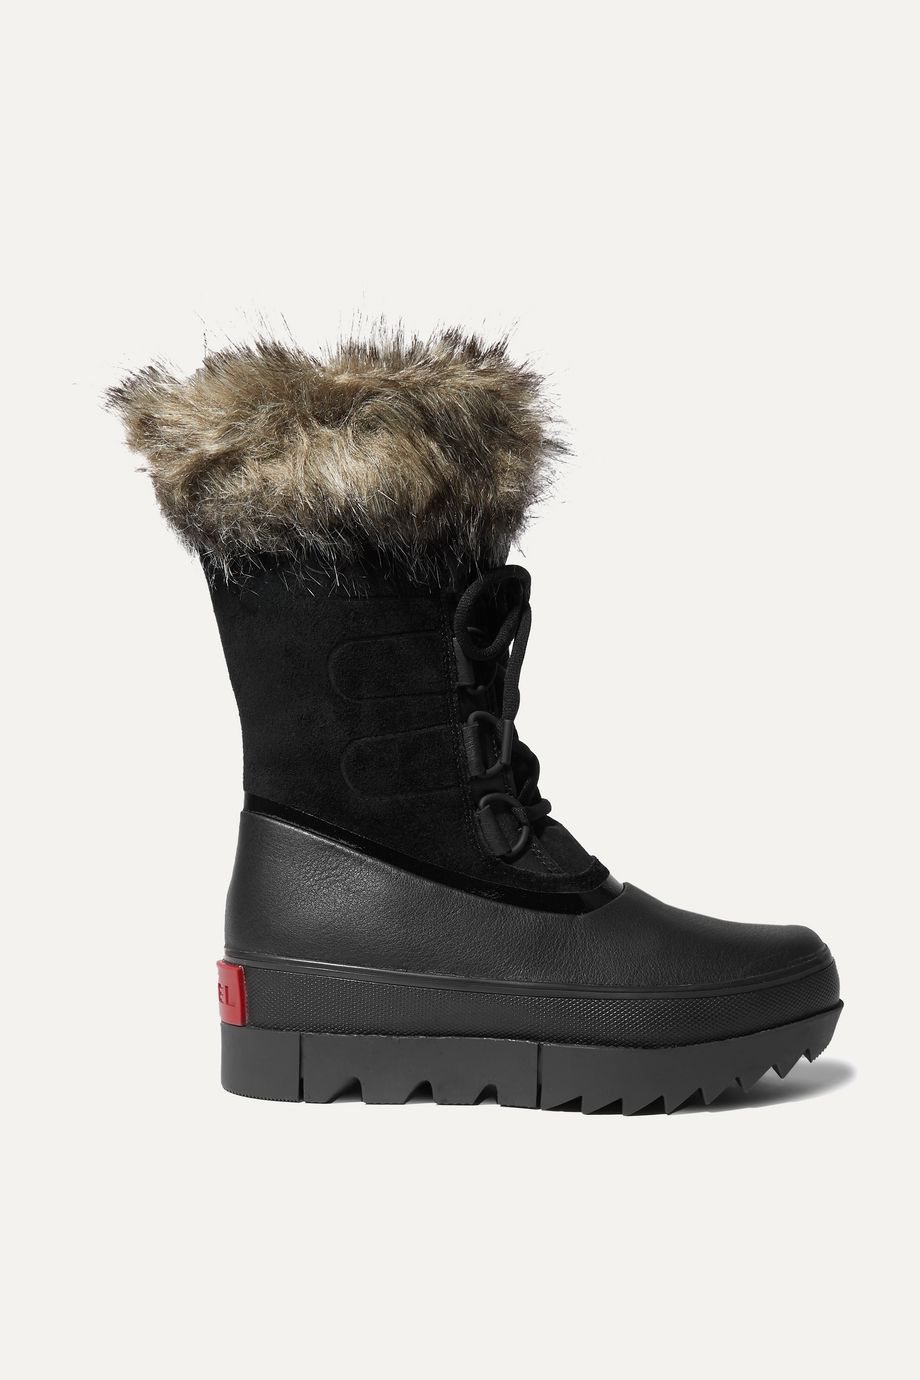 SOREL Joan of Arctic faux fur-trimmed waterproof suede and rubber boots